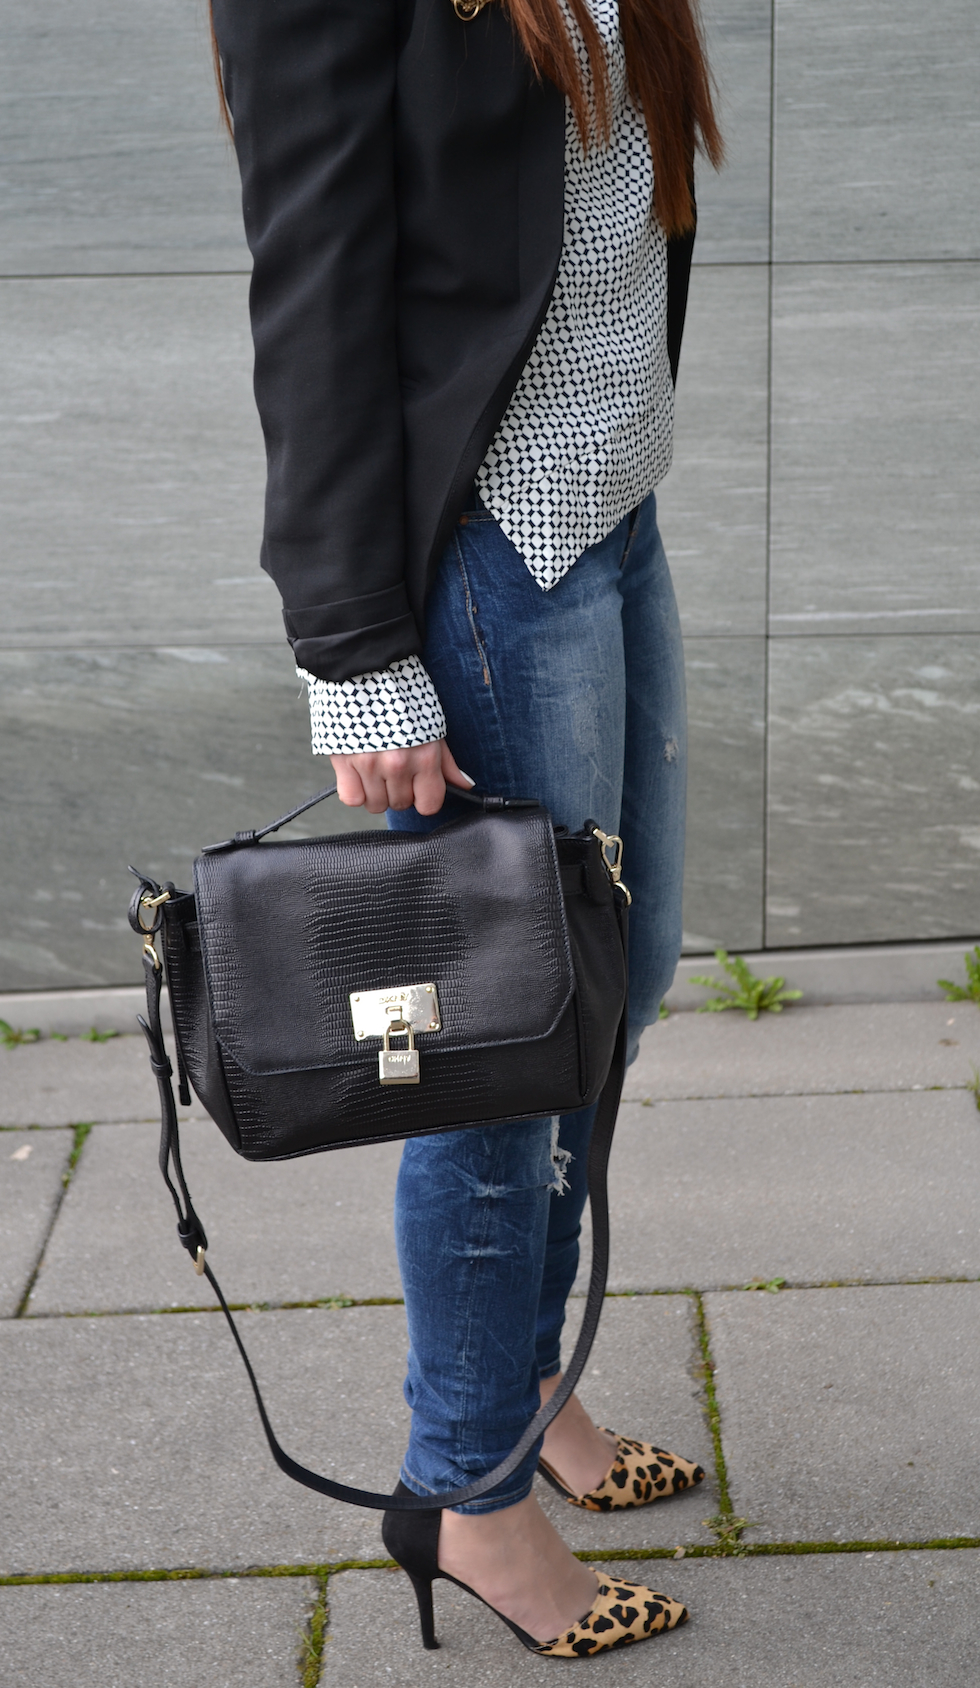 Pumps Leoprint und DKNY tasche, ripped jeans, mode blog europe